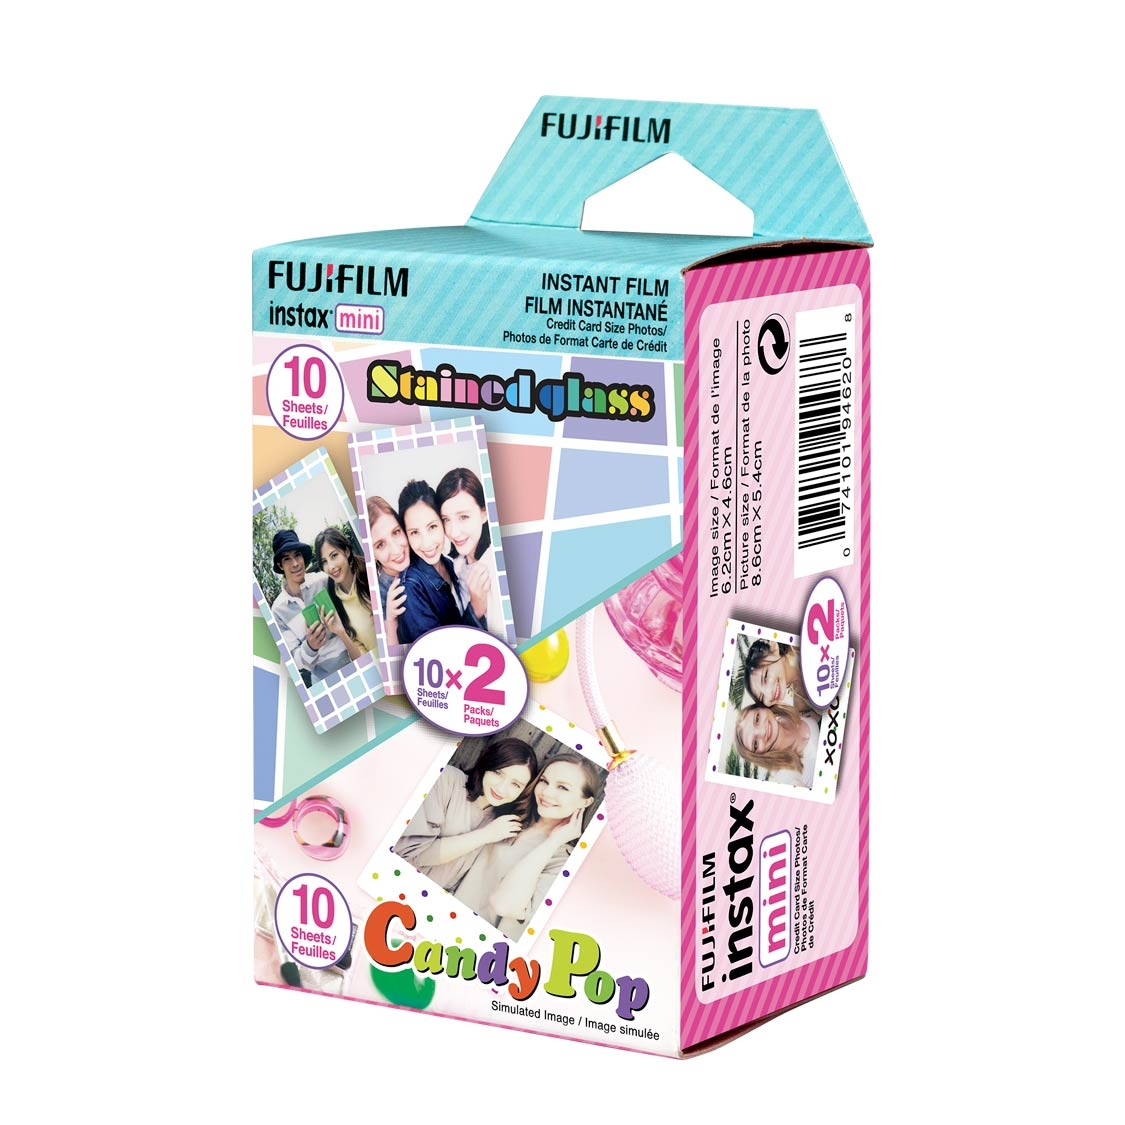 Fuji Instax Mini Pretty Pack (Stained Glass and Candy Pop)